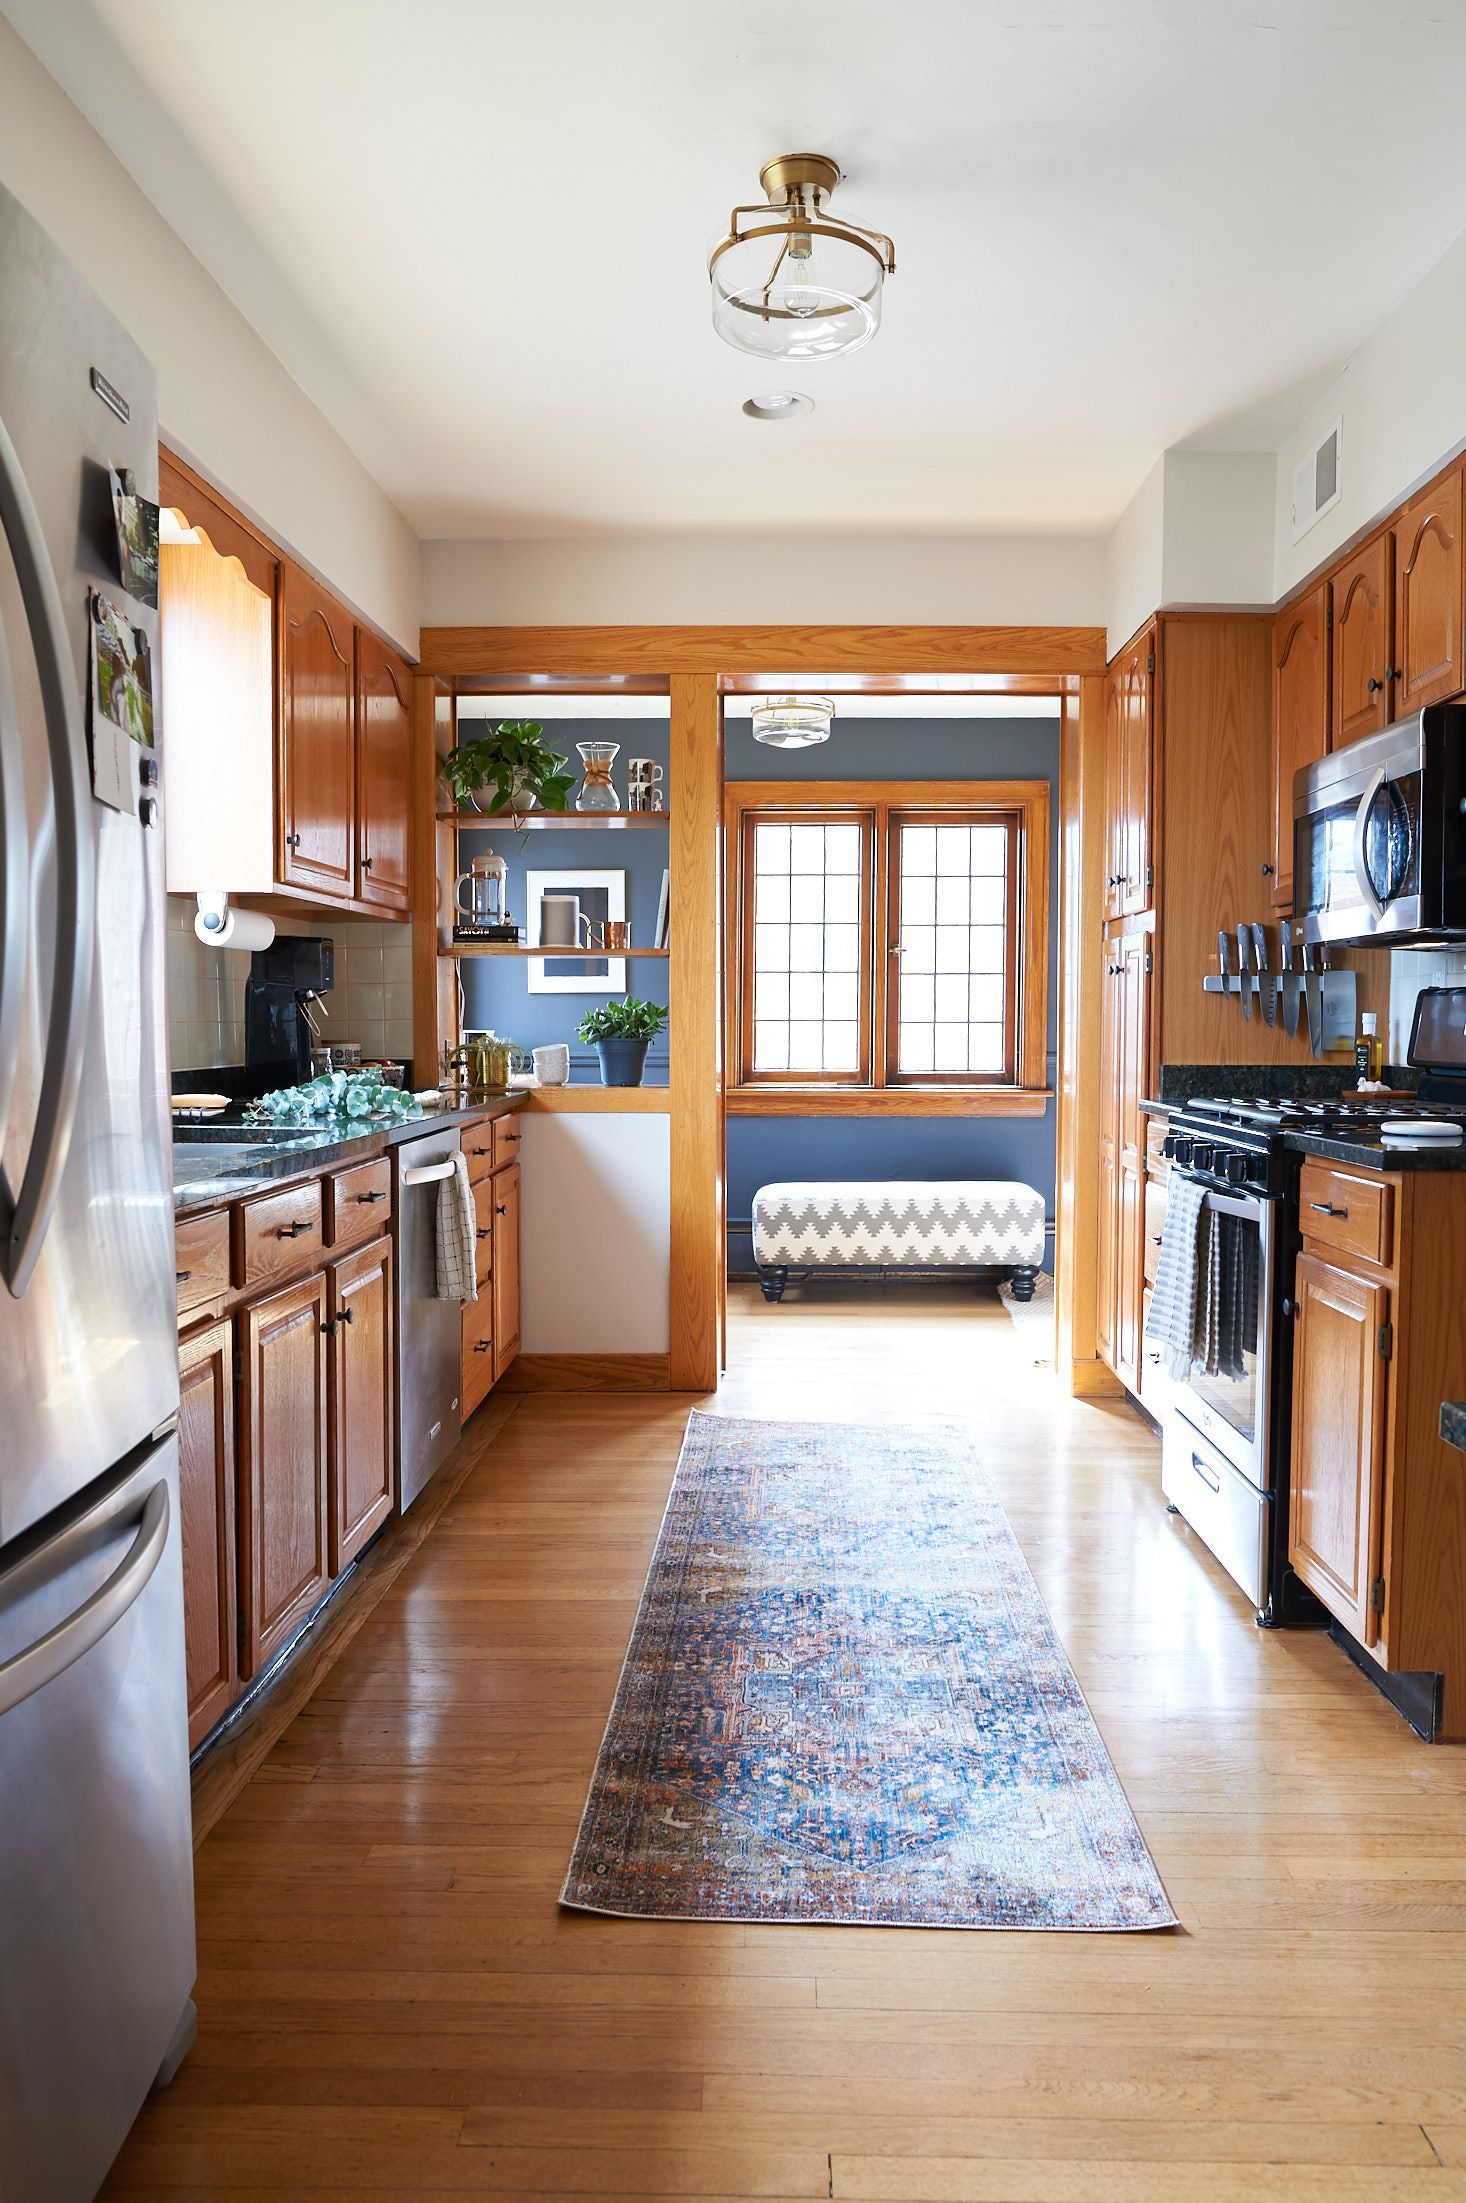 Our Two Weekend 600 Kitchen Facelift The Sweet Beast In 2020 White Oak Kitchen Oak Trim Kitchen Facelift